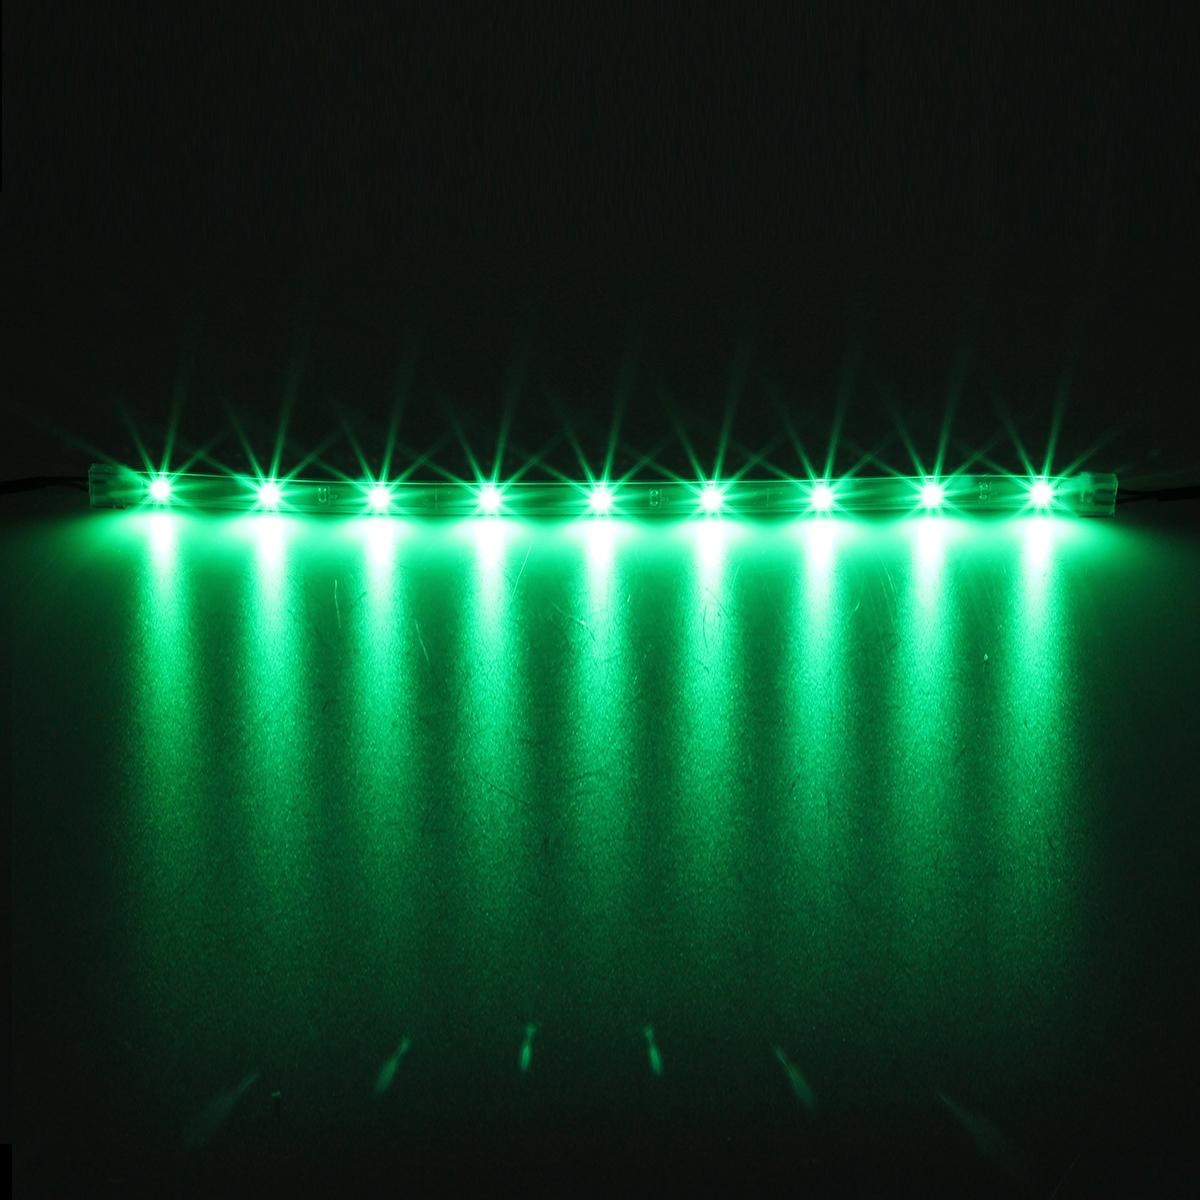 14pc green car truck underglow under body neon accent glow led lights 12 strip ebay - Underglow neon ...